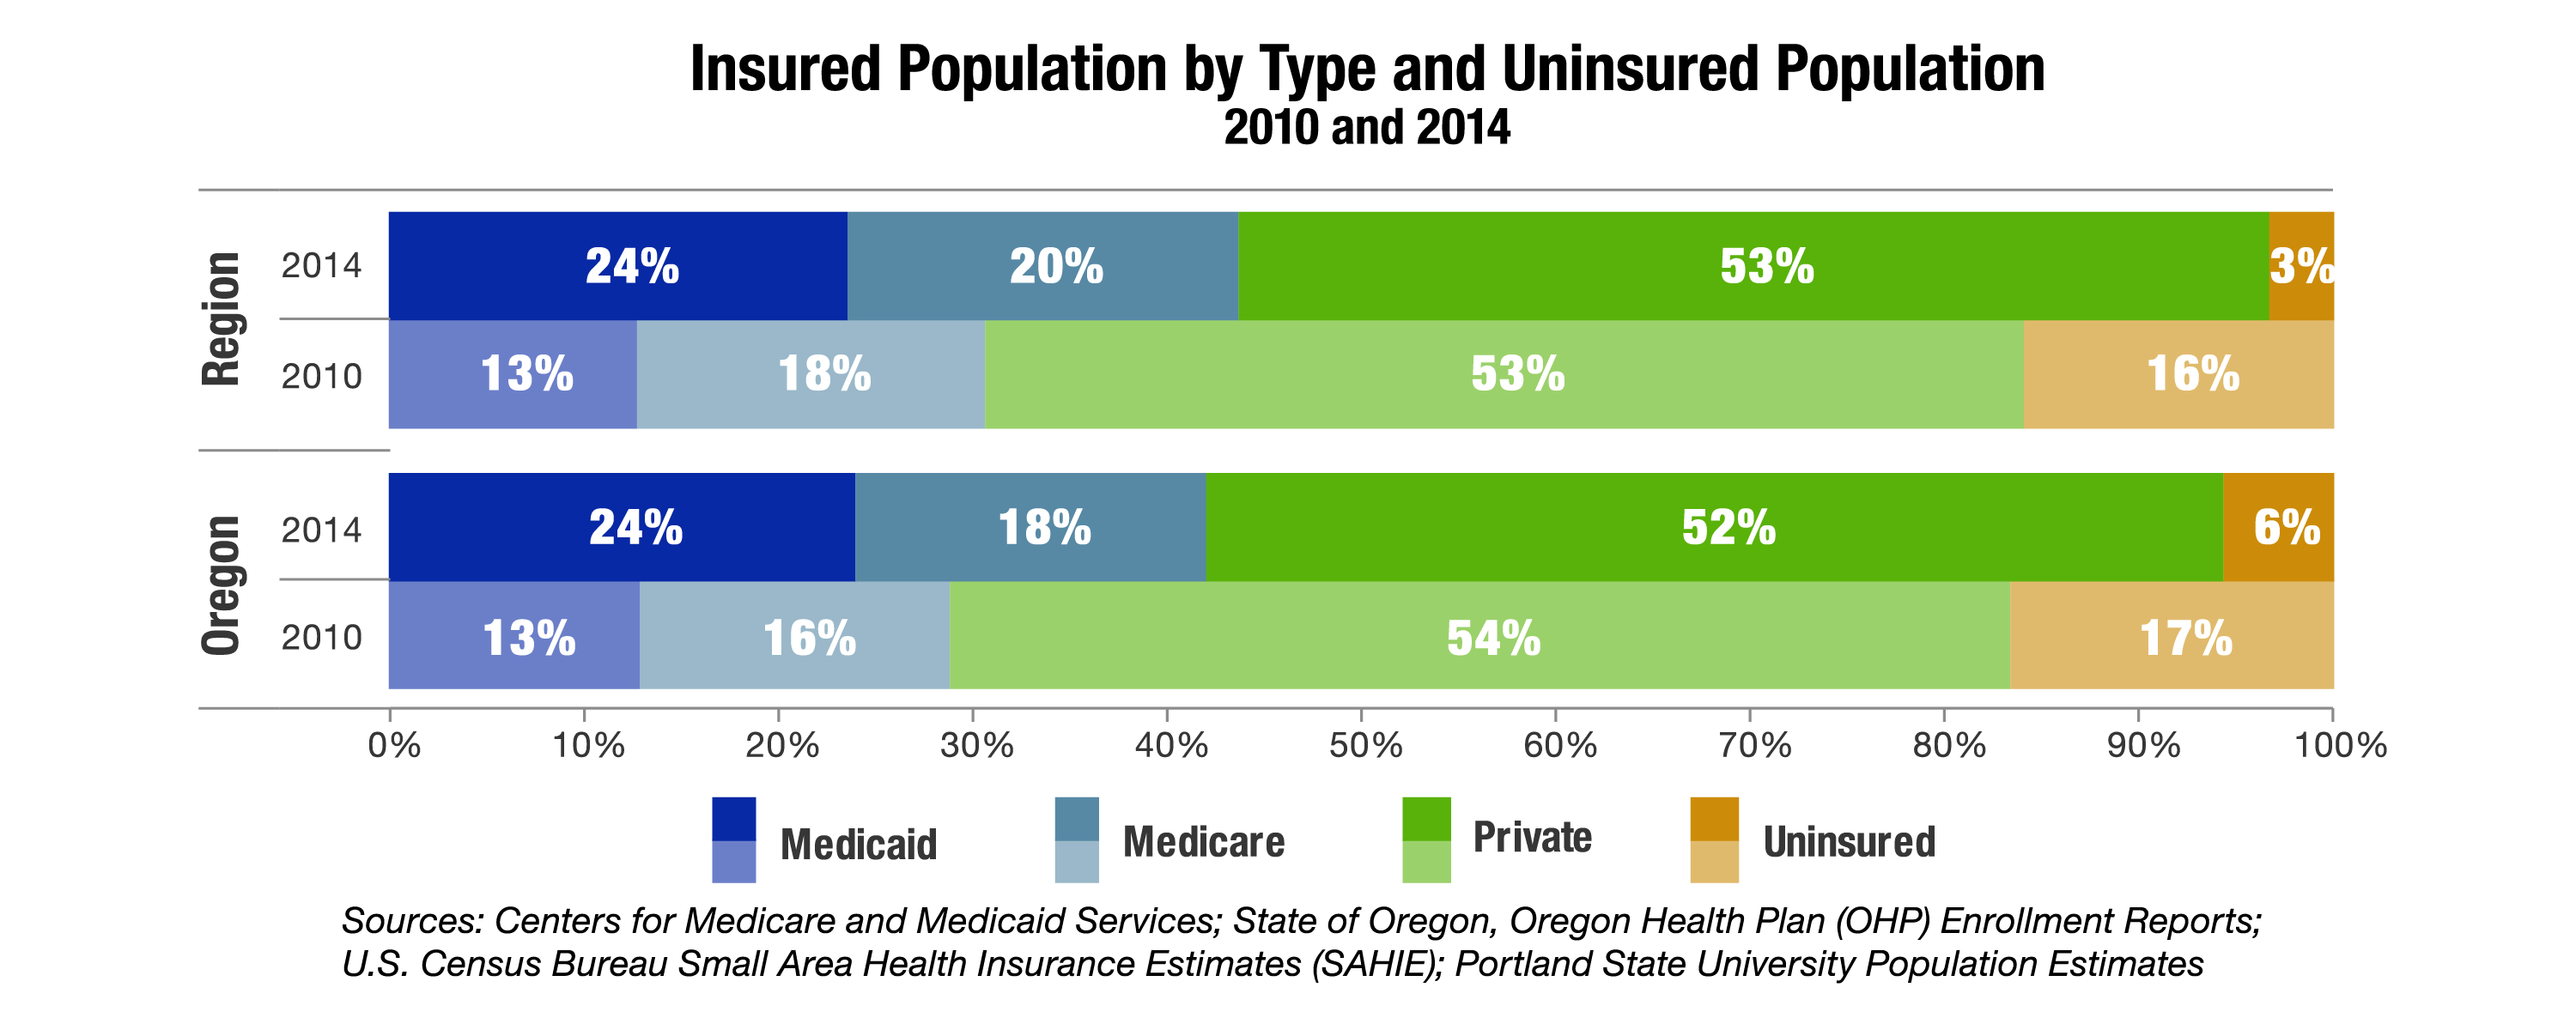 Insured Population by Type and Uninsured Population